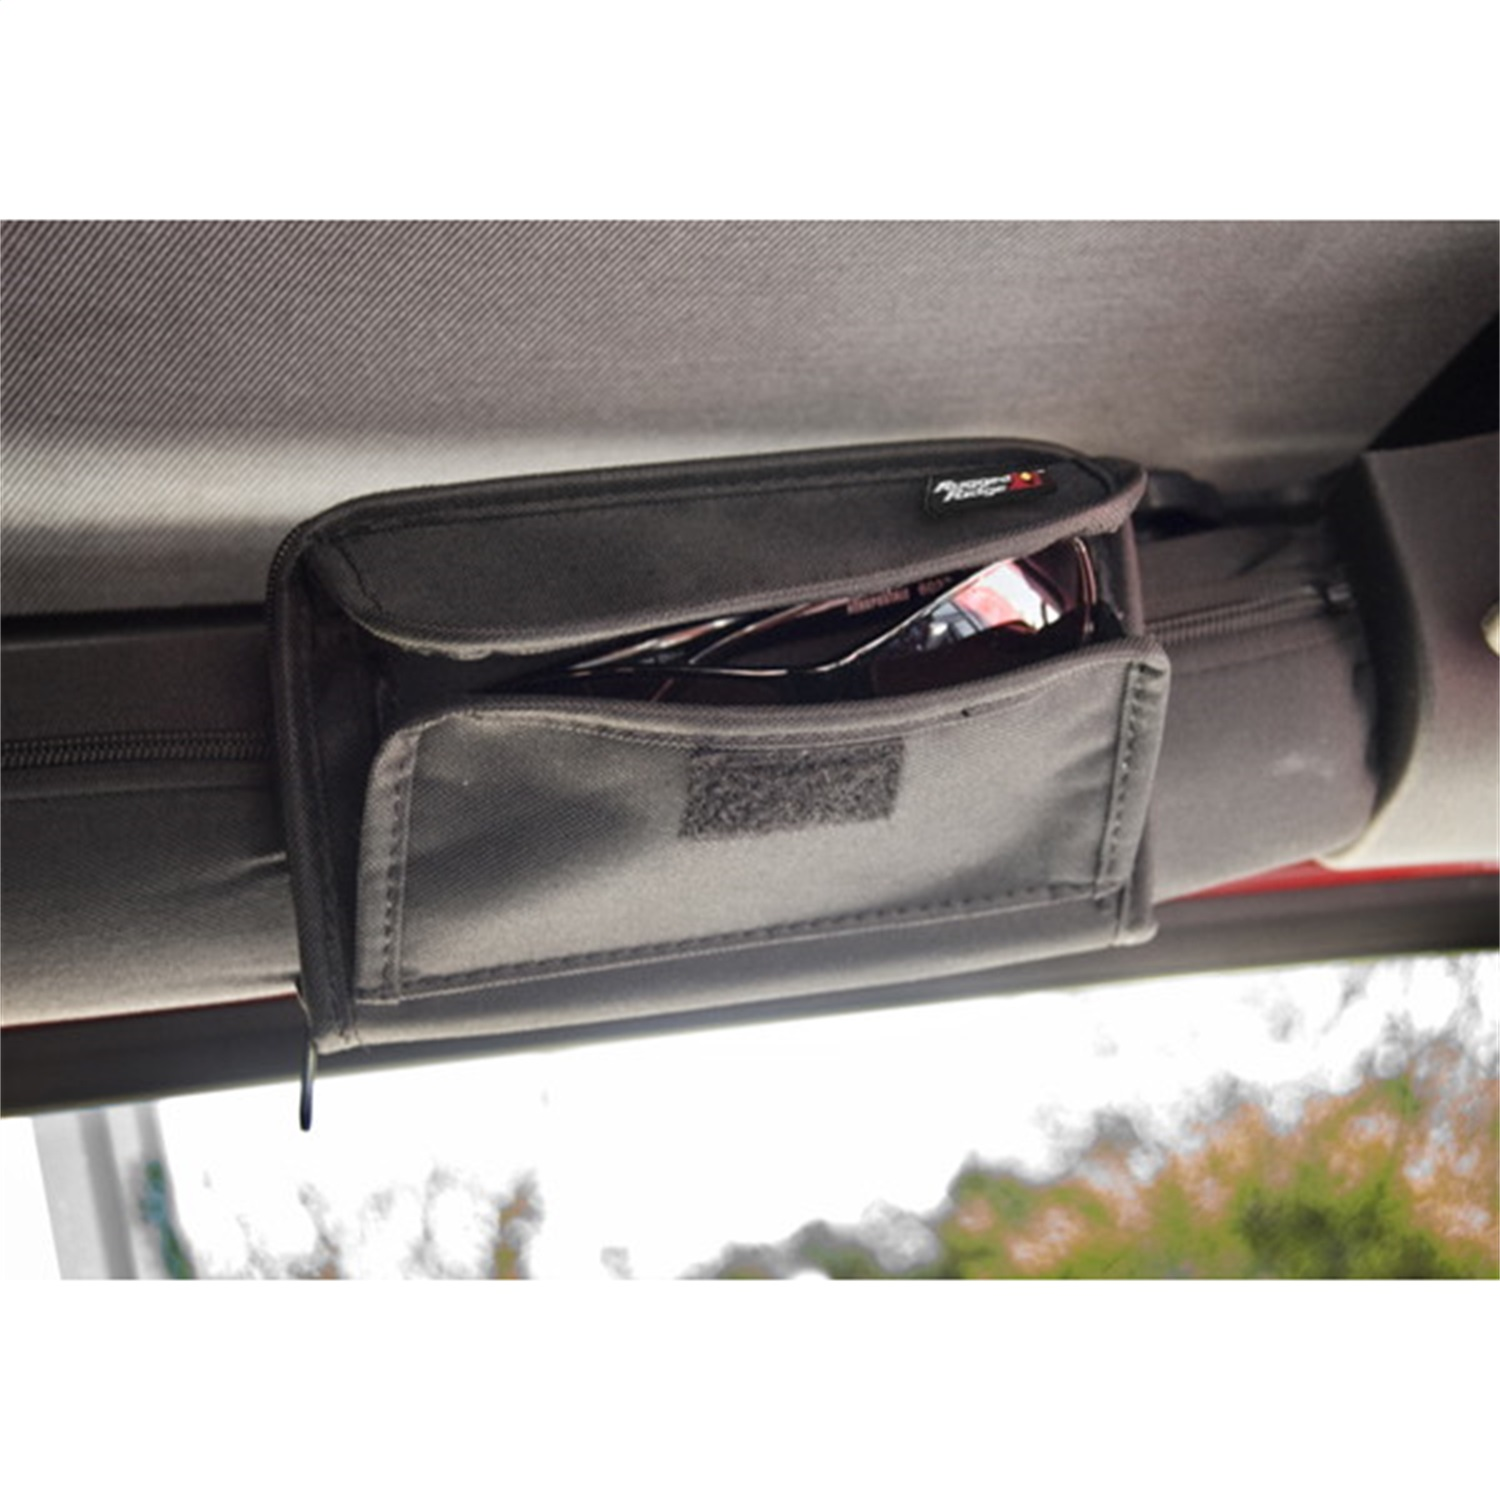 Rugged Ridge Roll Bar Storage Bag